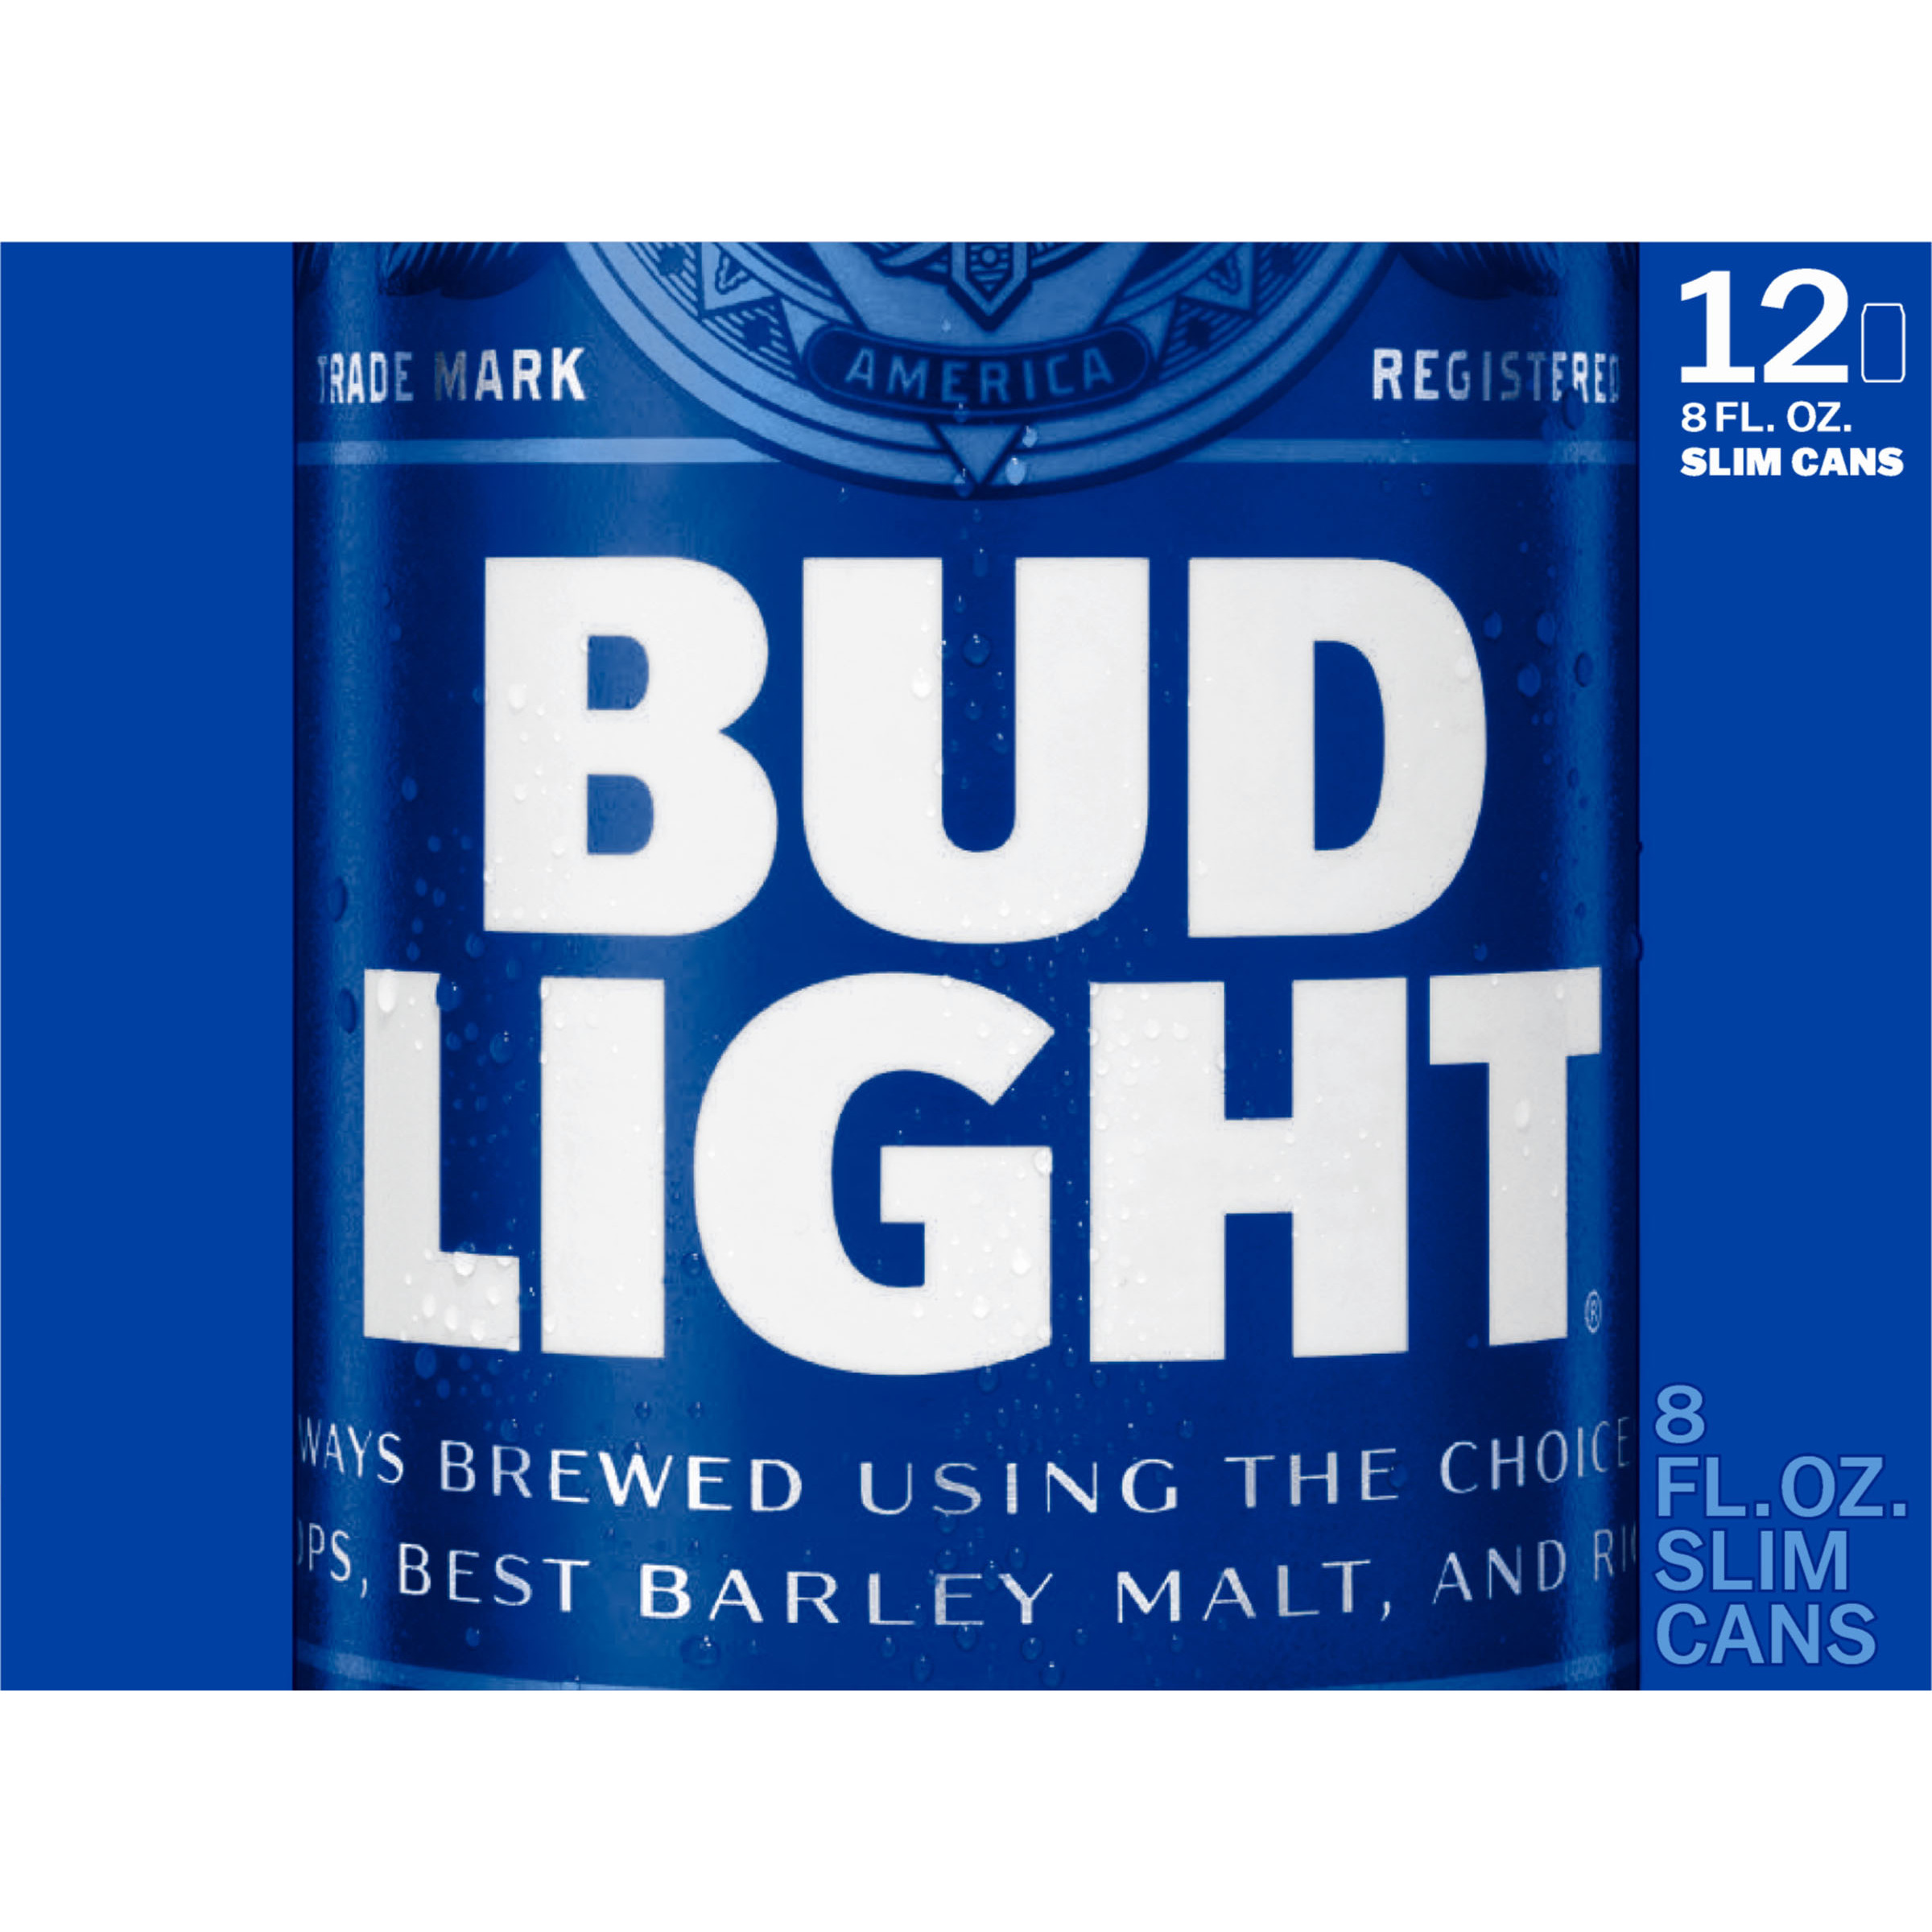 Bud Light Beer 12 8 Fl. Oz. Cans   Walmart.com